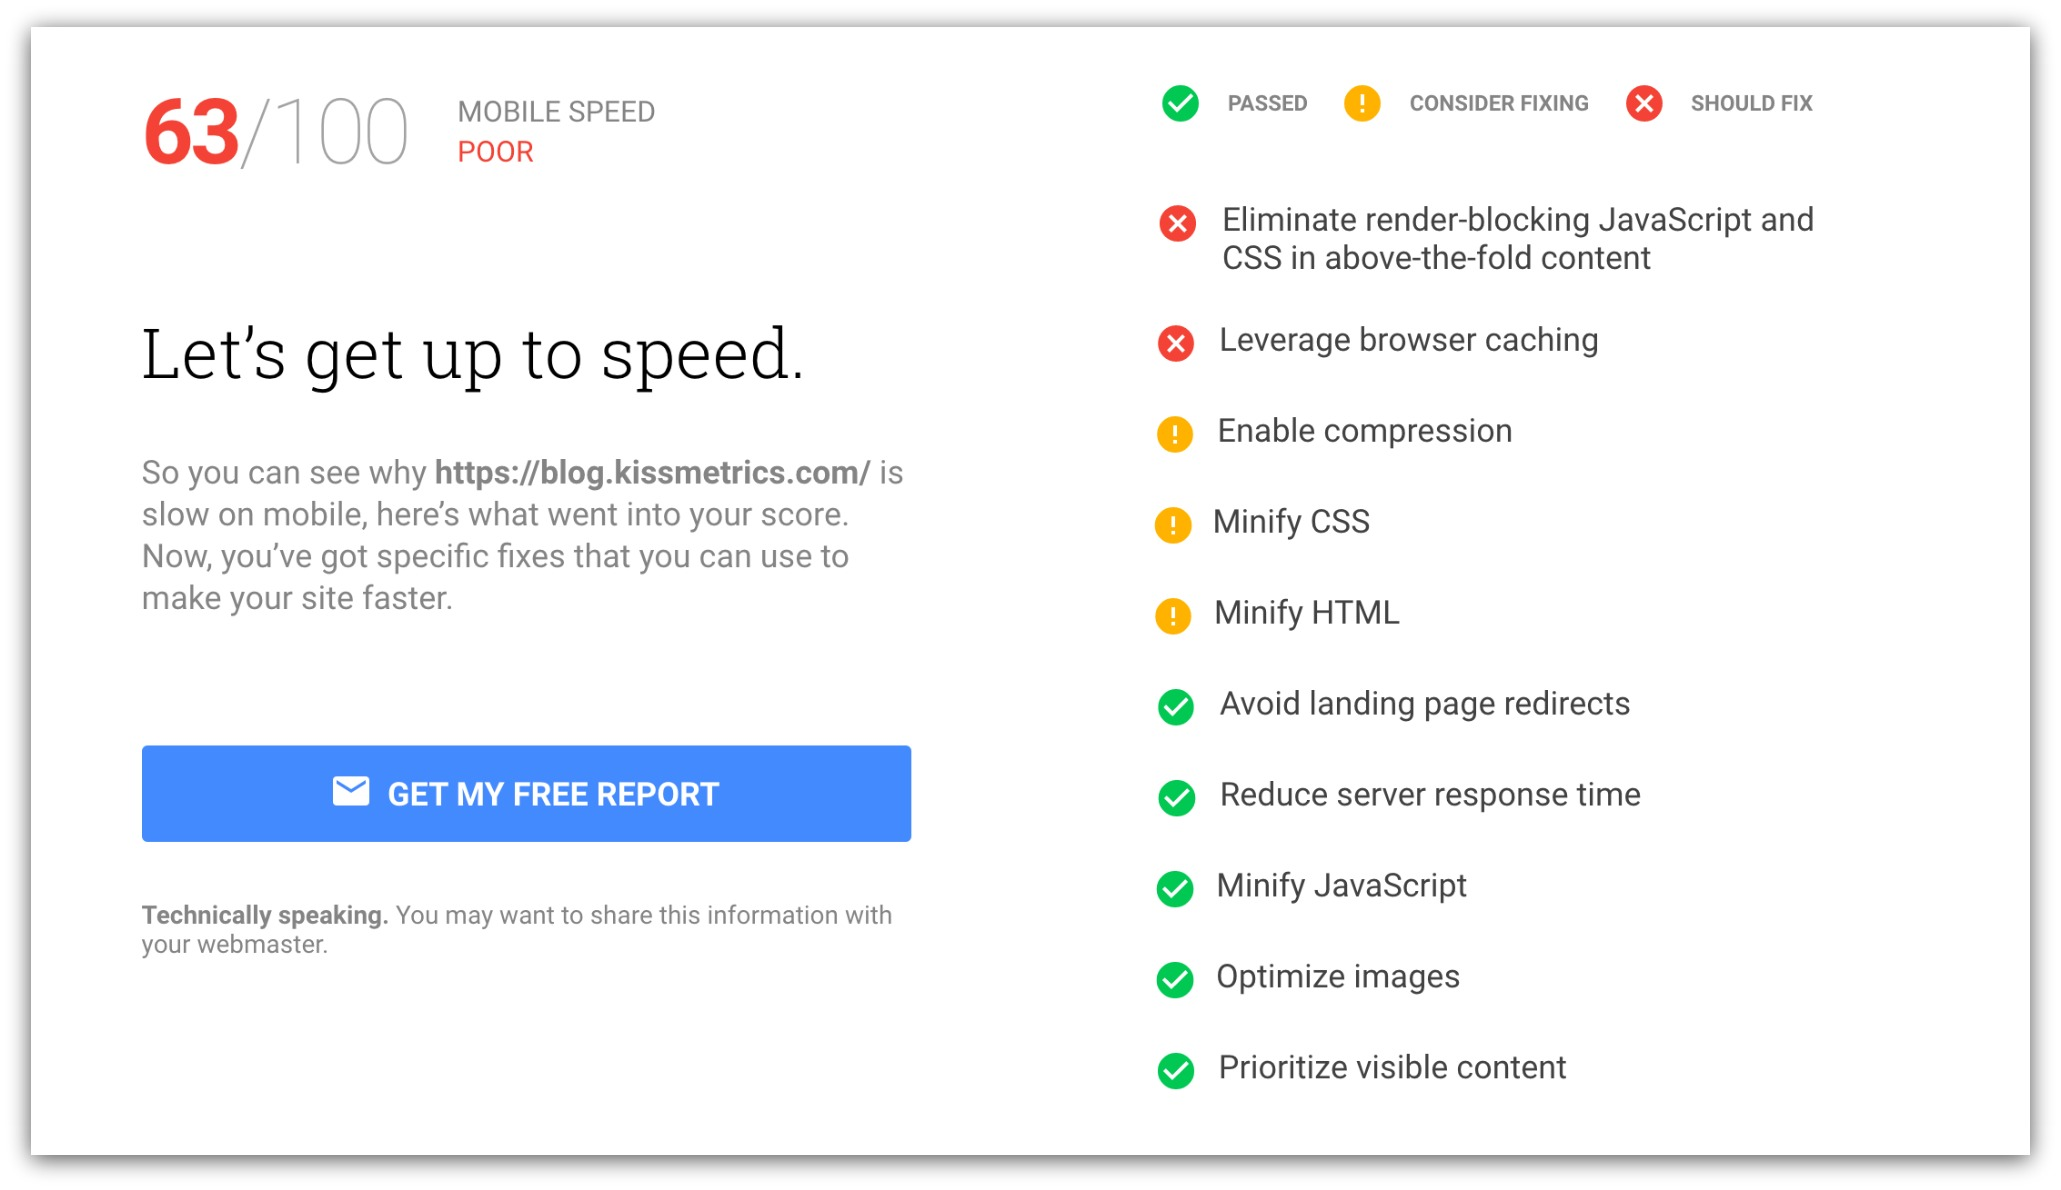 Mobile Speed Suggestions Google